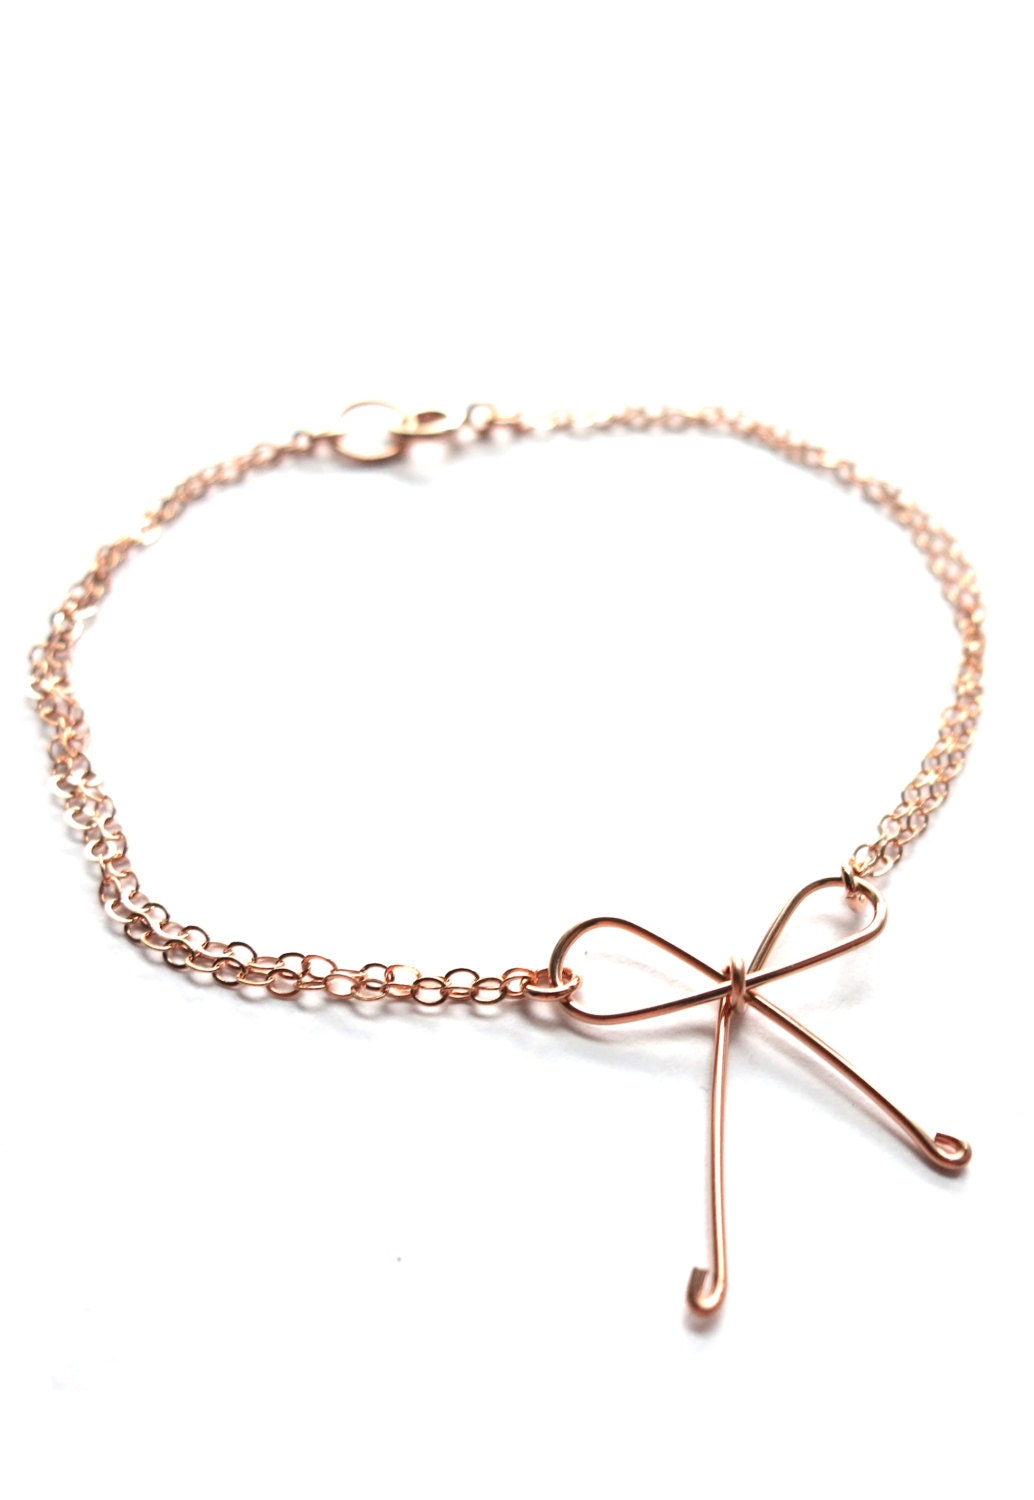 Tie The Knot Rose Gold Filled Bracelet Hand Wired Knot Etsy